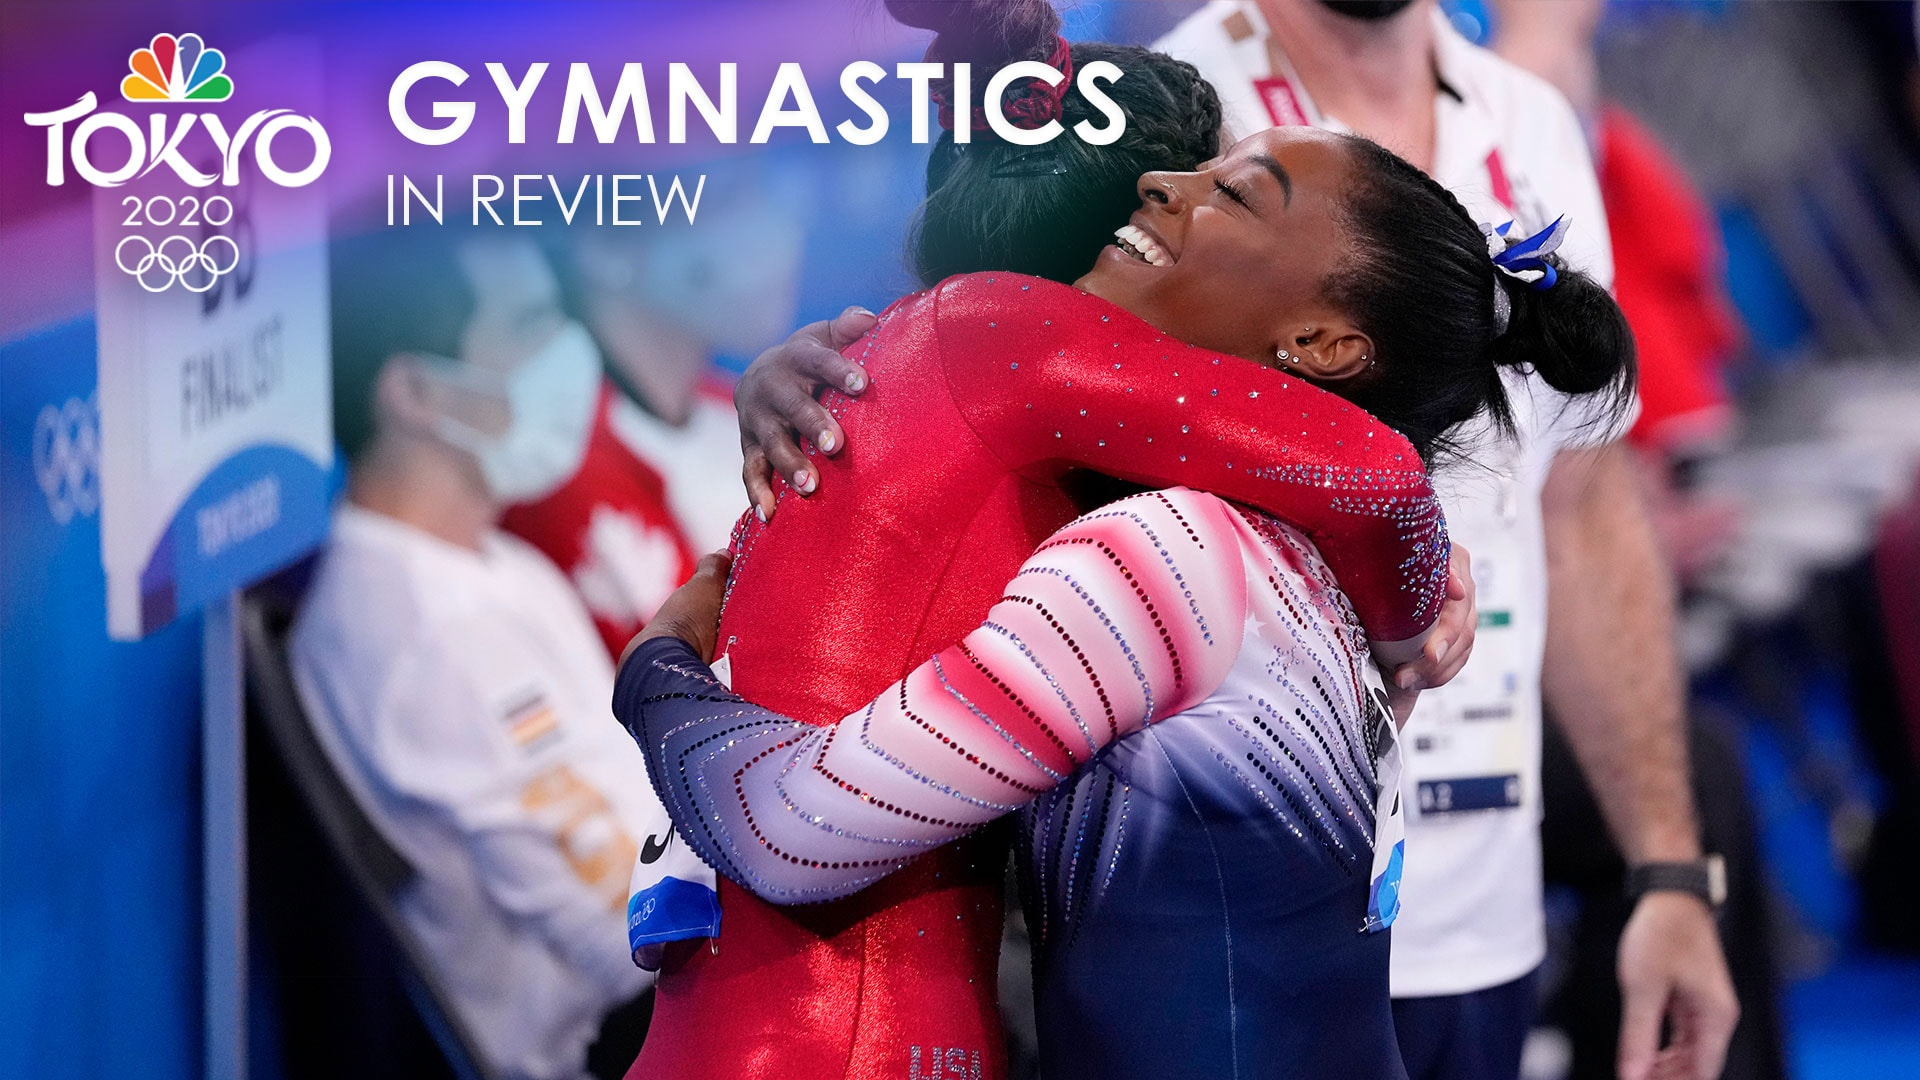 Image for Tokyo Olympics gymnastics in review: Biles inspires, new stars are born